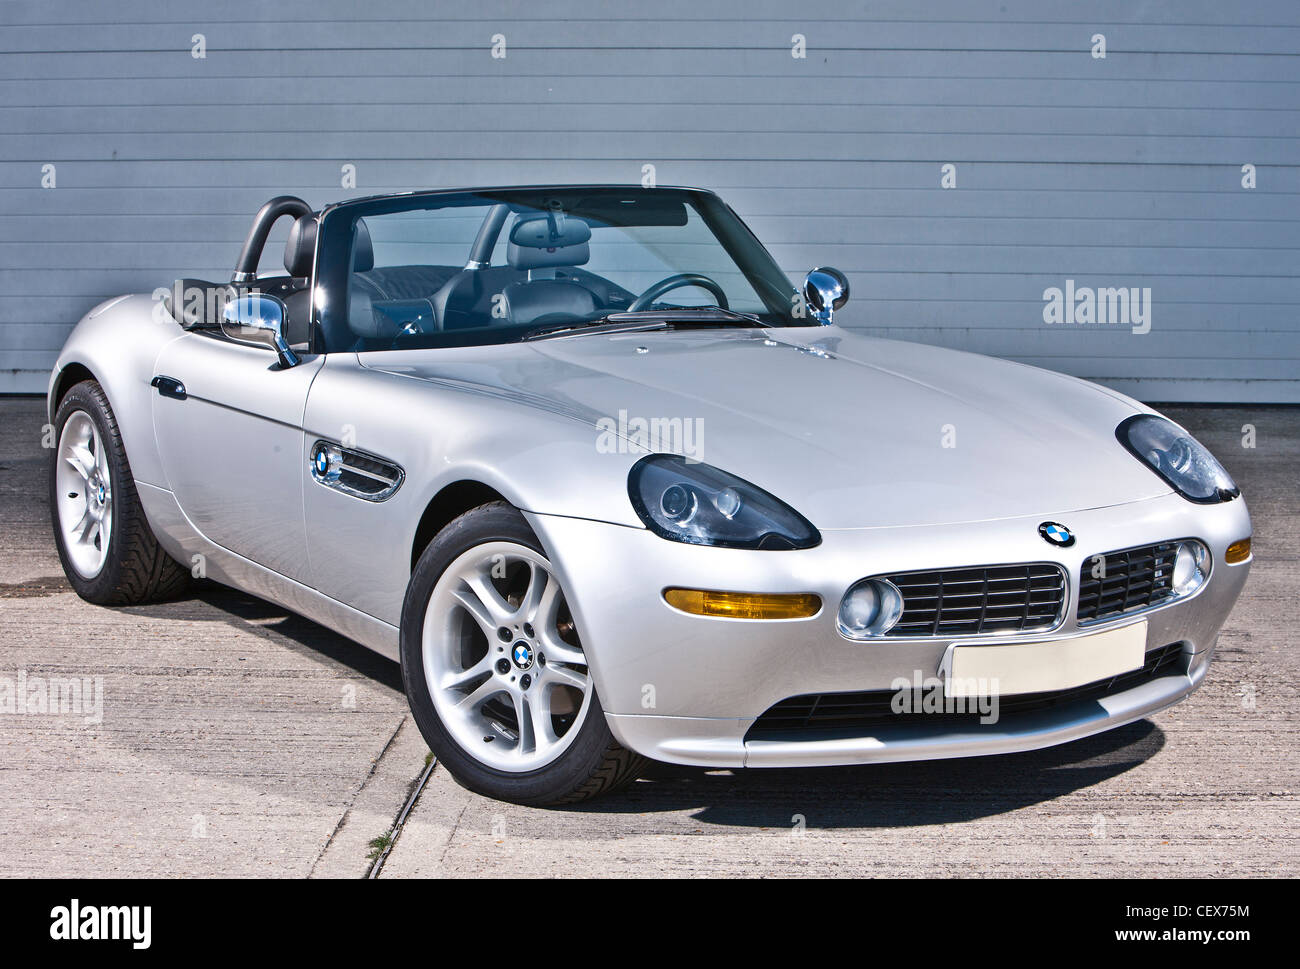 Bmw Z8 James Bond Convertible Sports Car Stock Photo